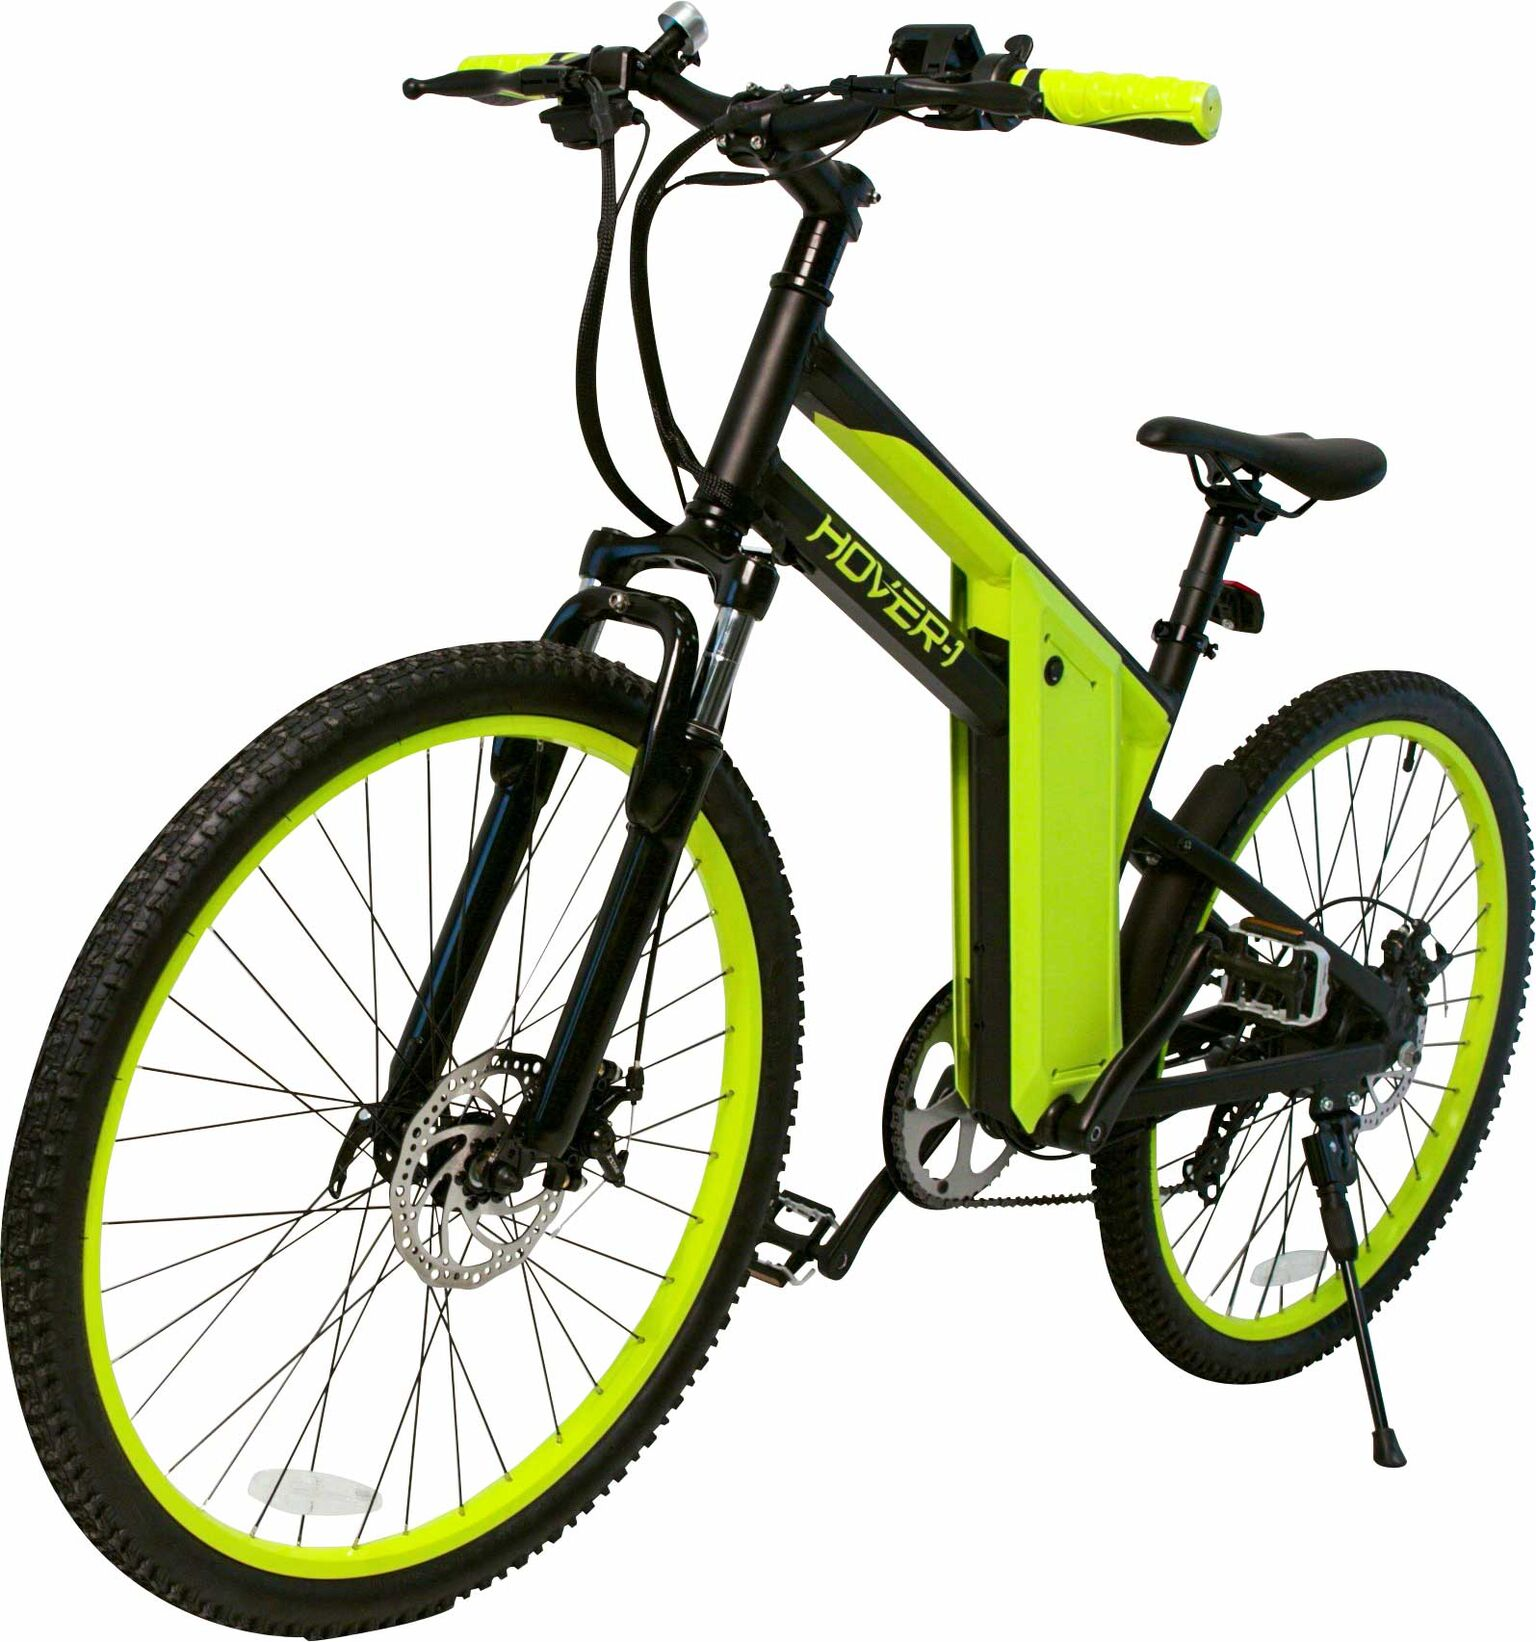 "Hover-1 Hybrid UL Certified Pedal Assisted Electric Bike w/ 26"" Wheel, Alloy Frame, 3 Speed Mode, Shimano Derailer, Front & Rear Disc Breaks - Black and Neon Green"